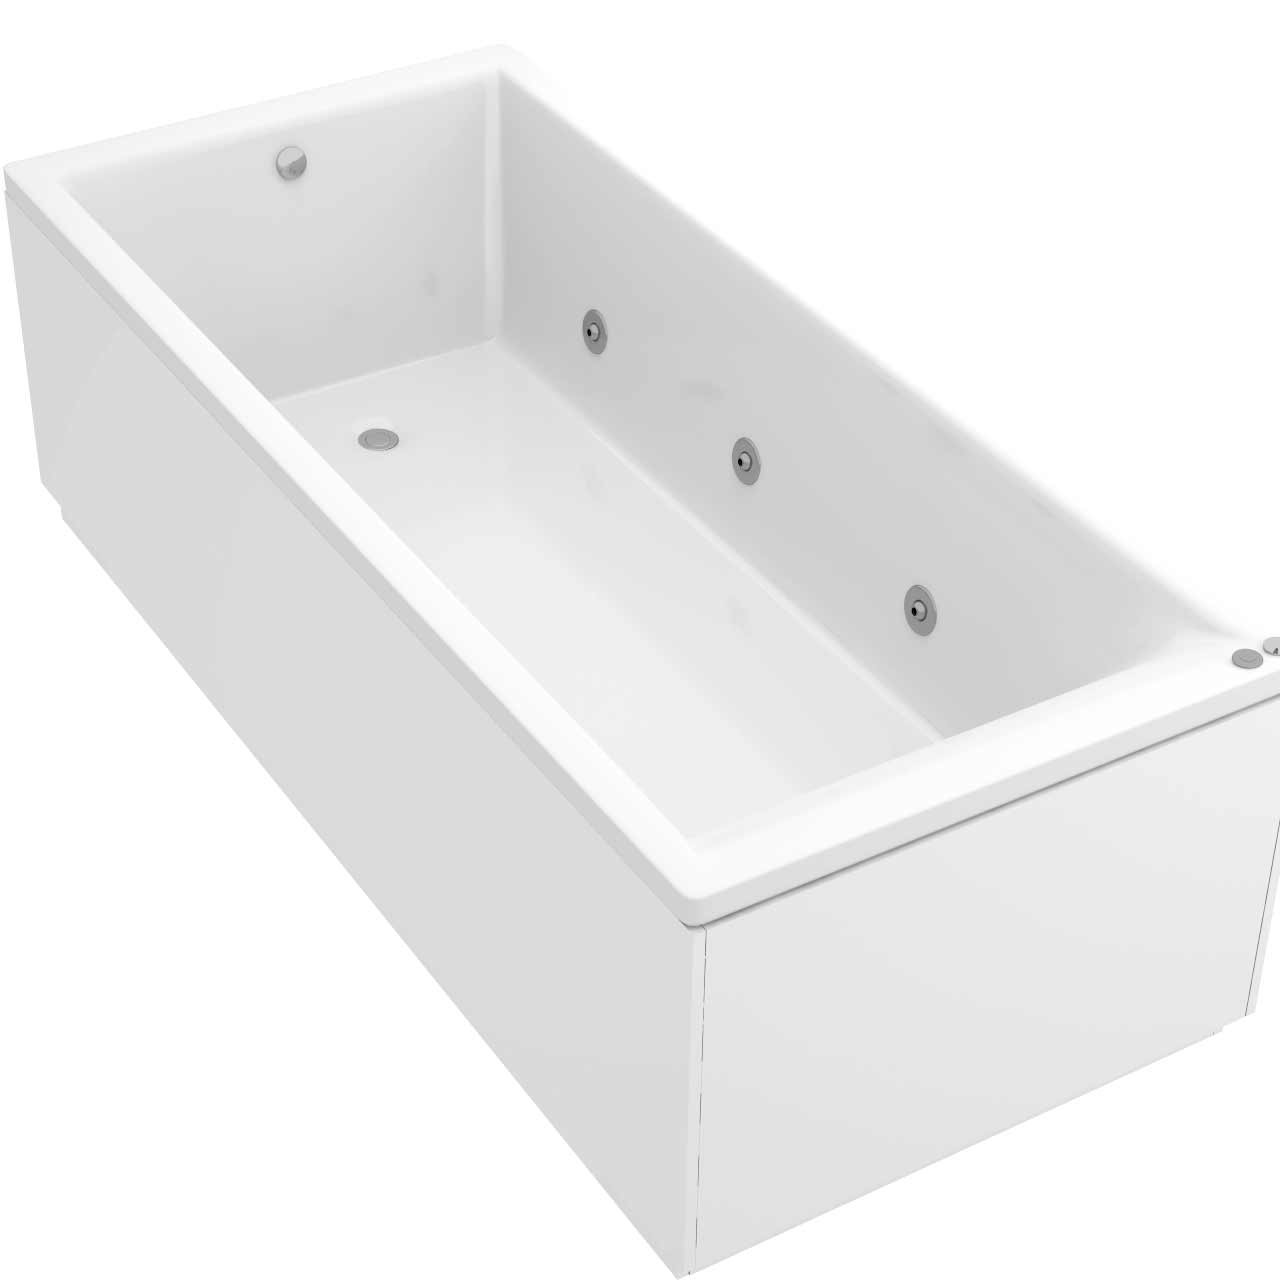 Summit End Tap 6 Jet Chrome V-Tec Whirlpool Bath 1800x800